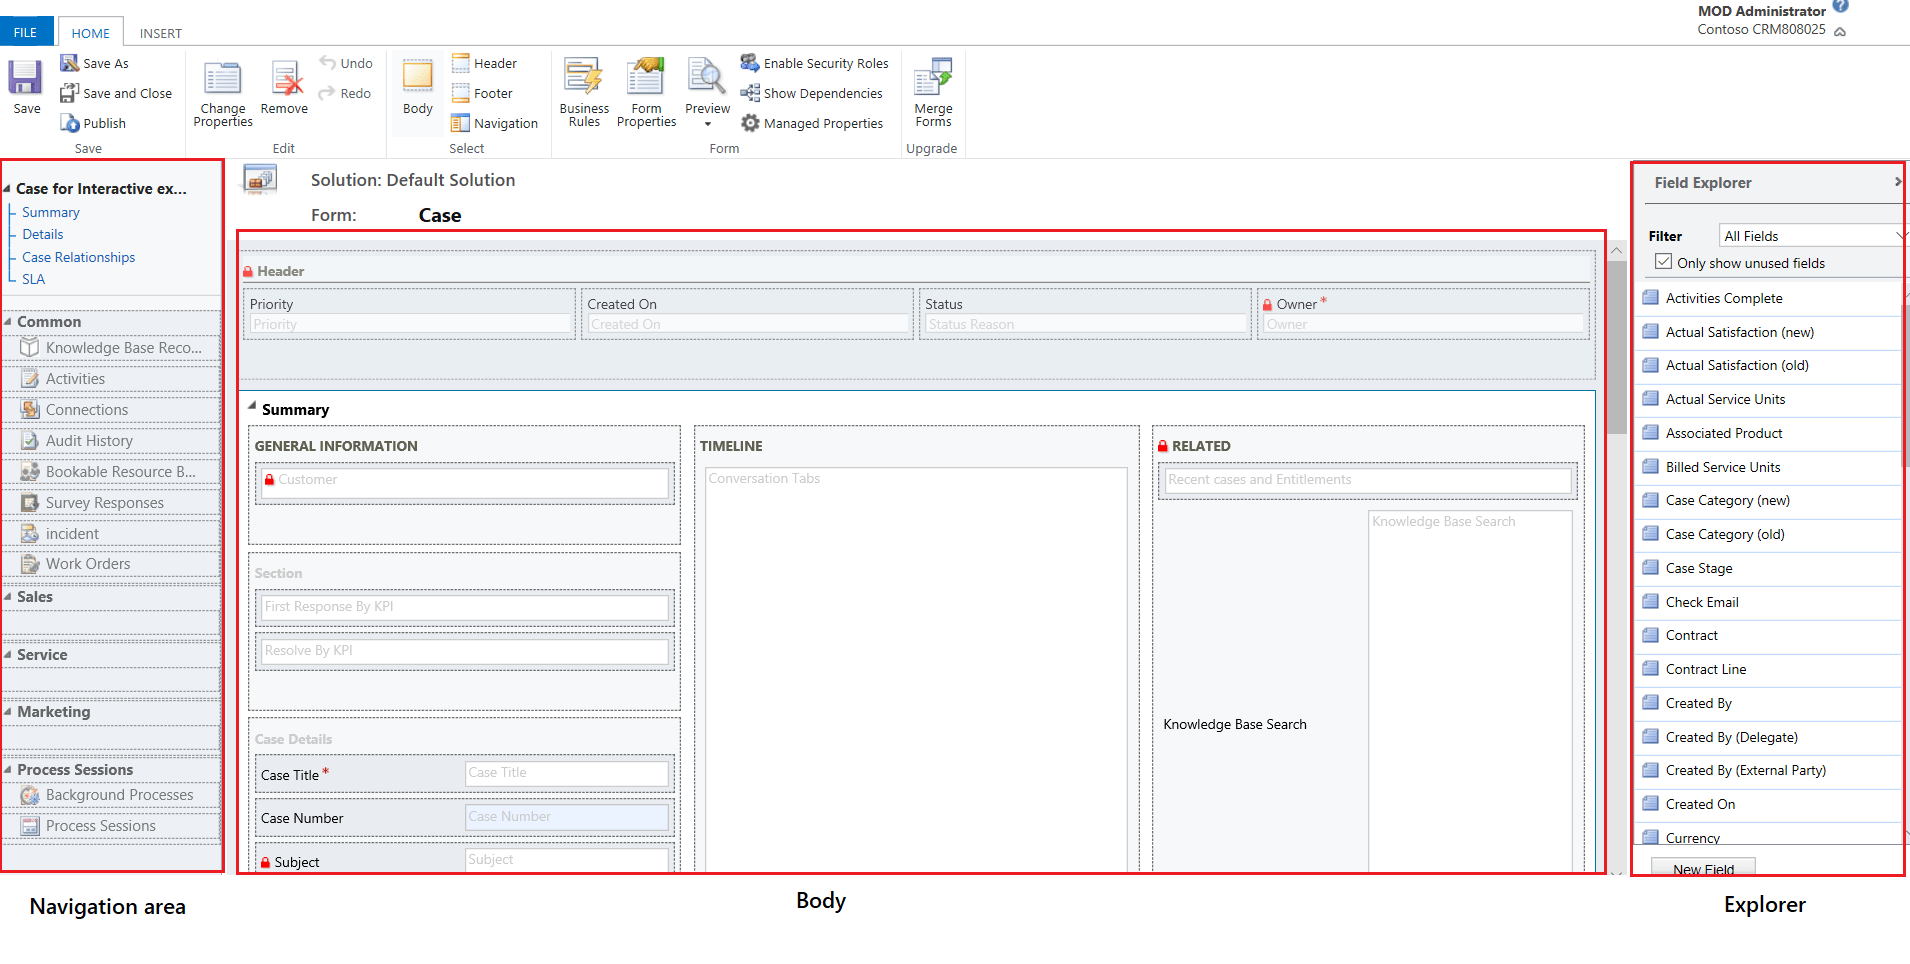 Overview Of The Form Editor User Interface